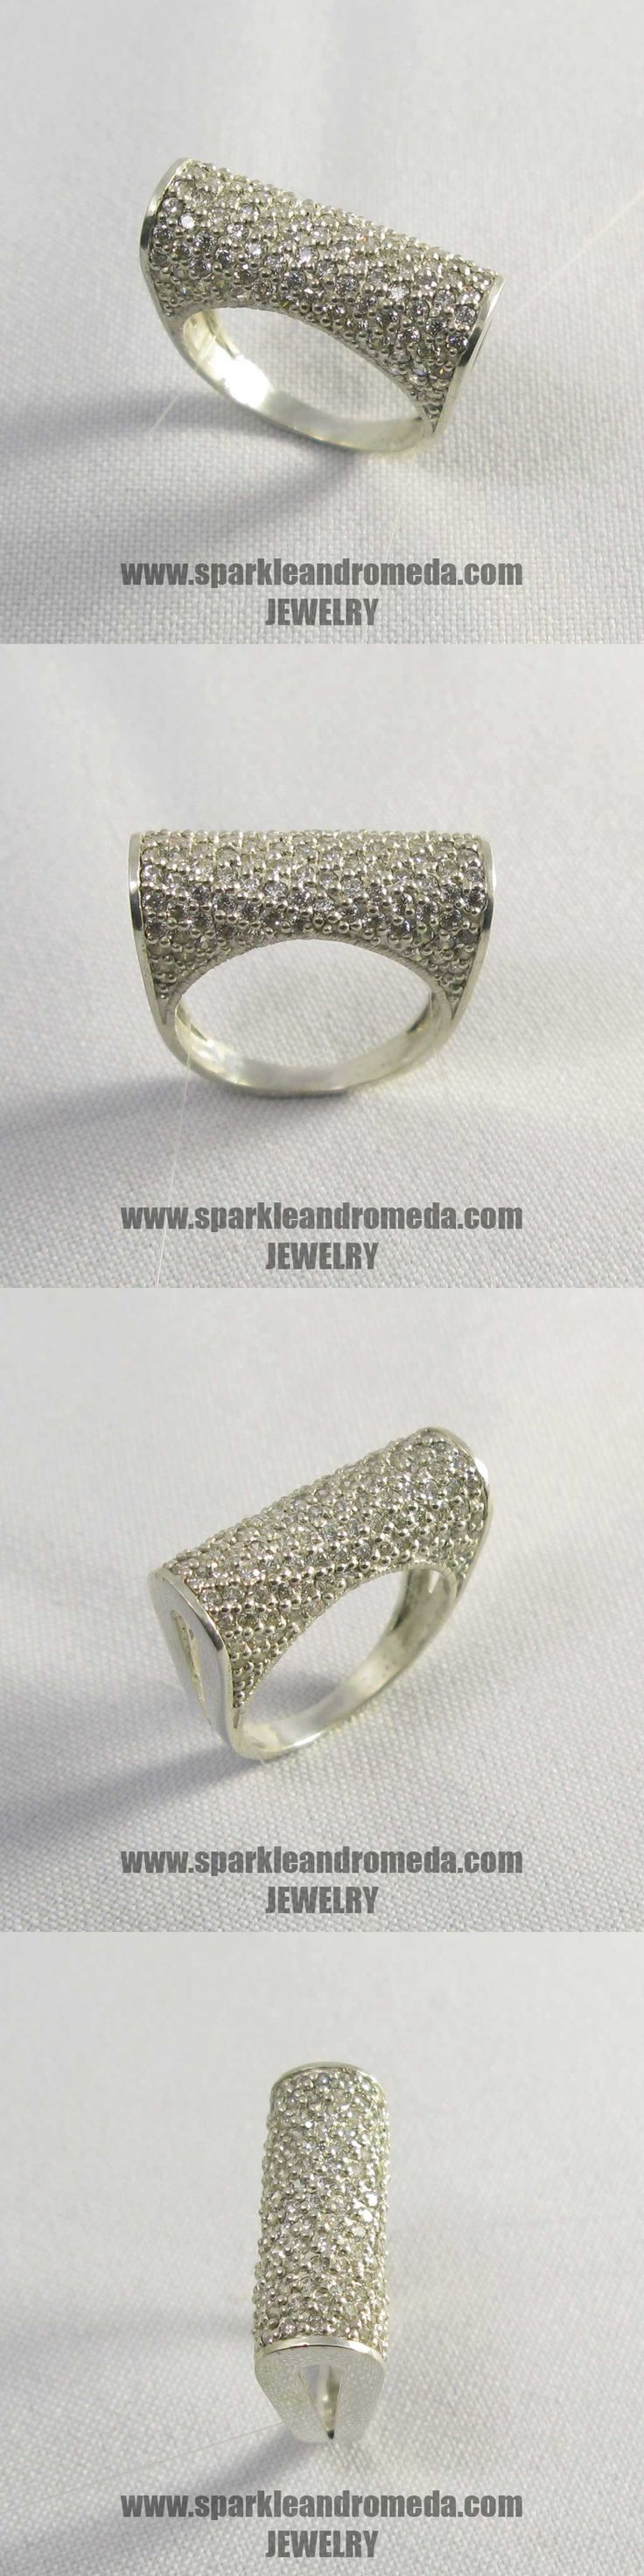 Sterling 925 silver ring with 110 round 1,5 mm and 4 round 1,25 mm white color cubic zirconia gemstones.